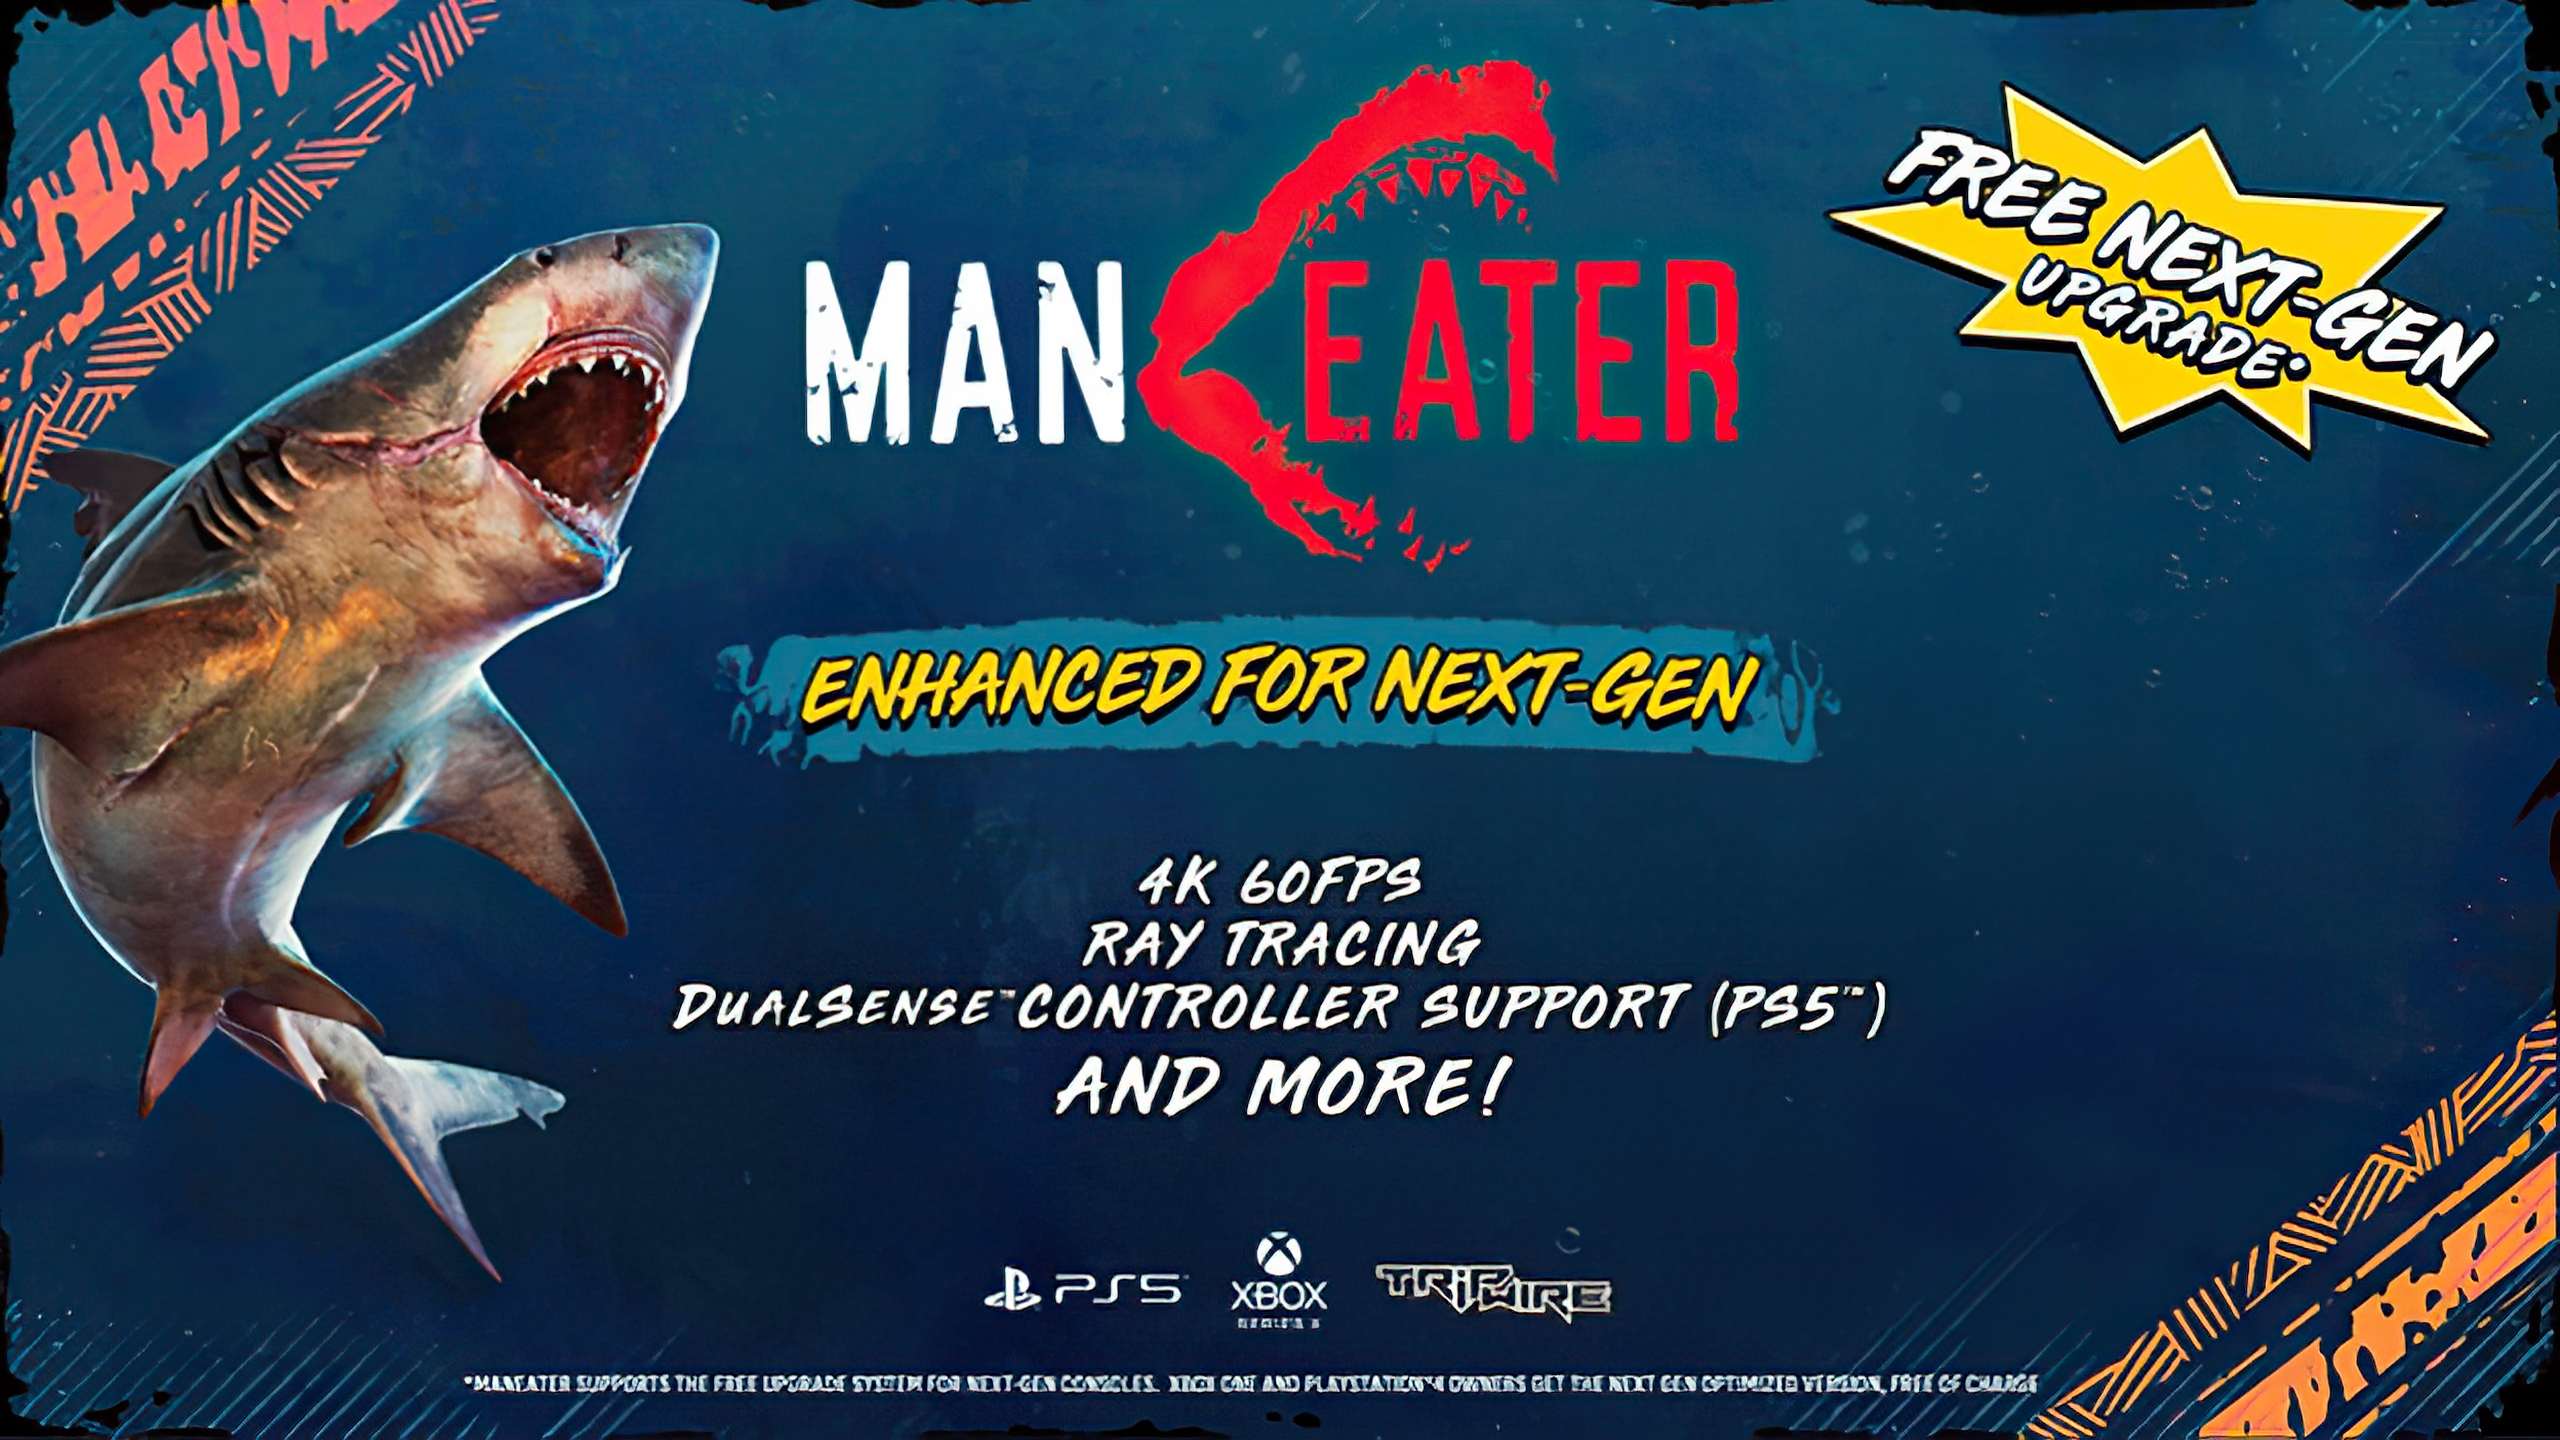 Maneater Evolves With Ray-Tracing, 4K 60 FPS & More Enhancements for Xbox Series X and PlayStation 5 Consoles